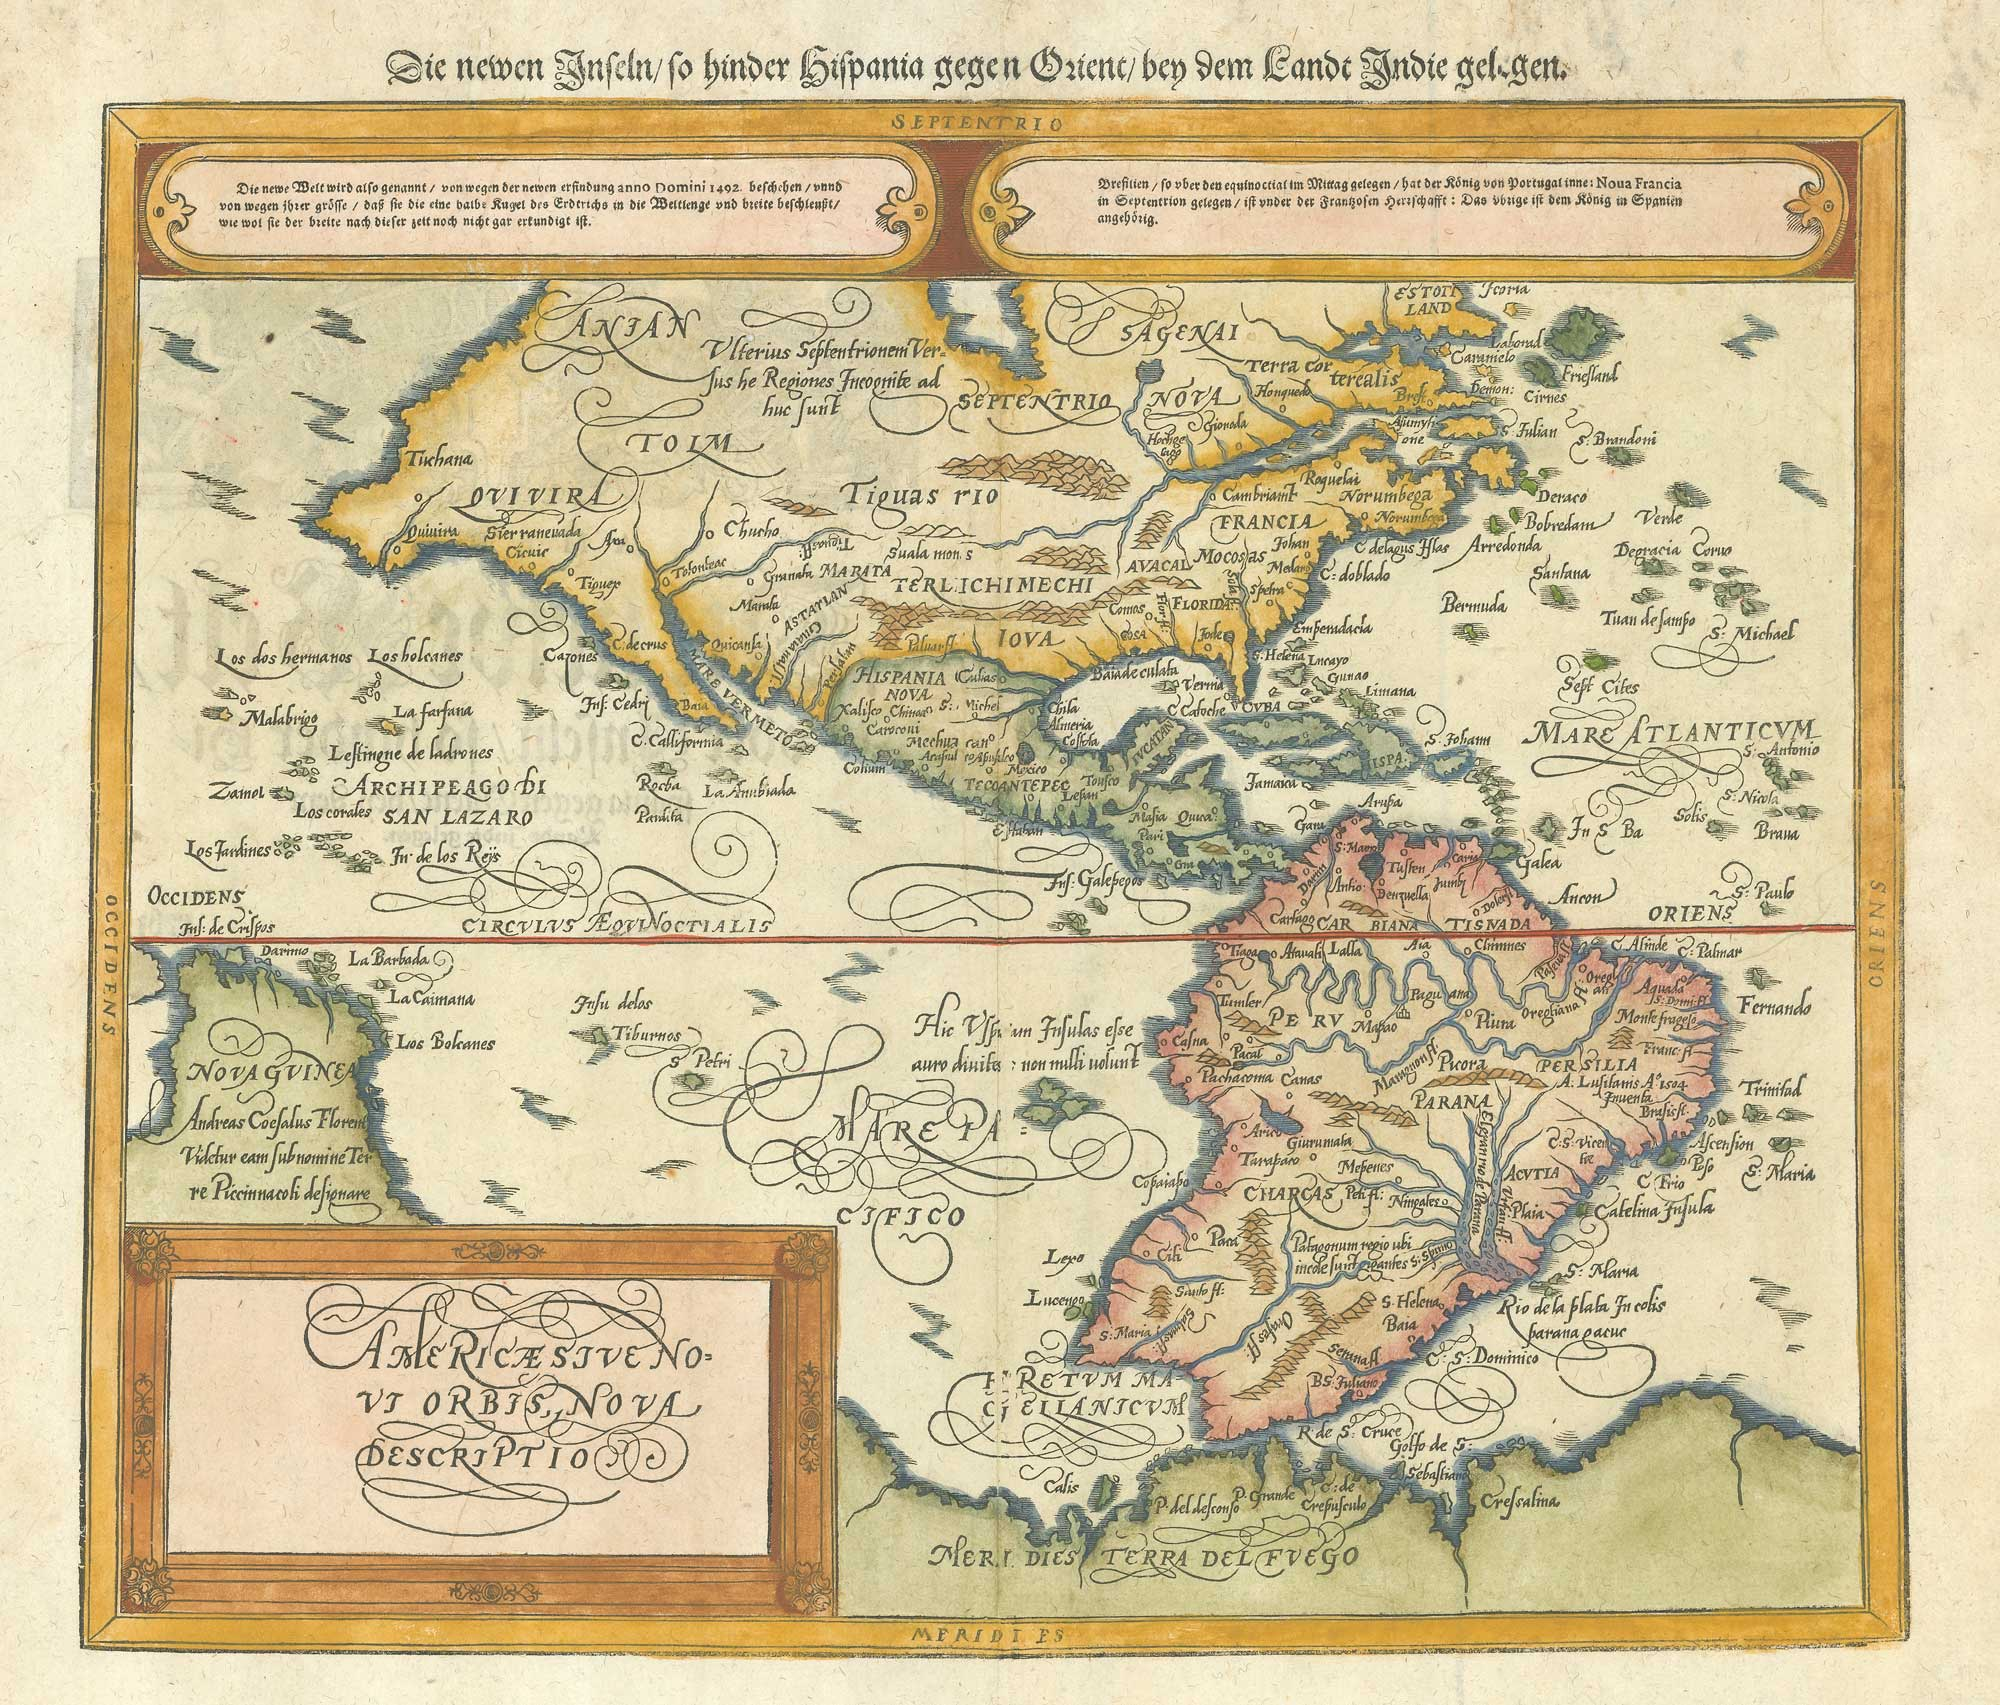 Munster America after Ortelius